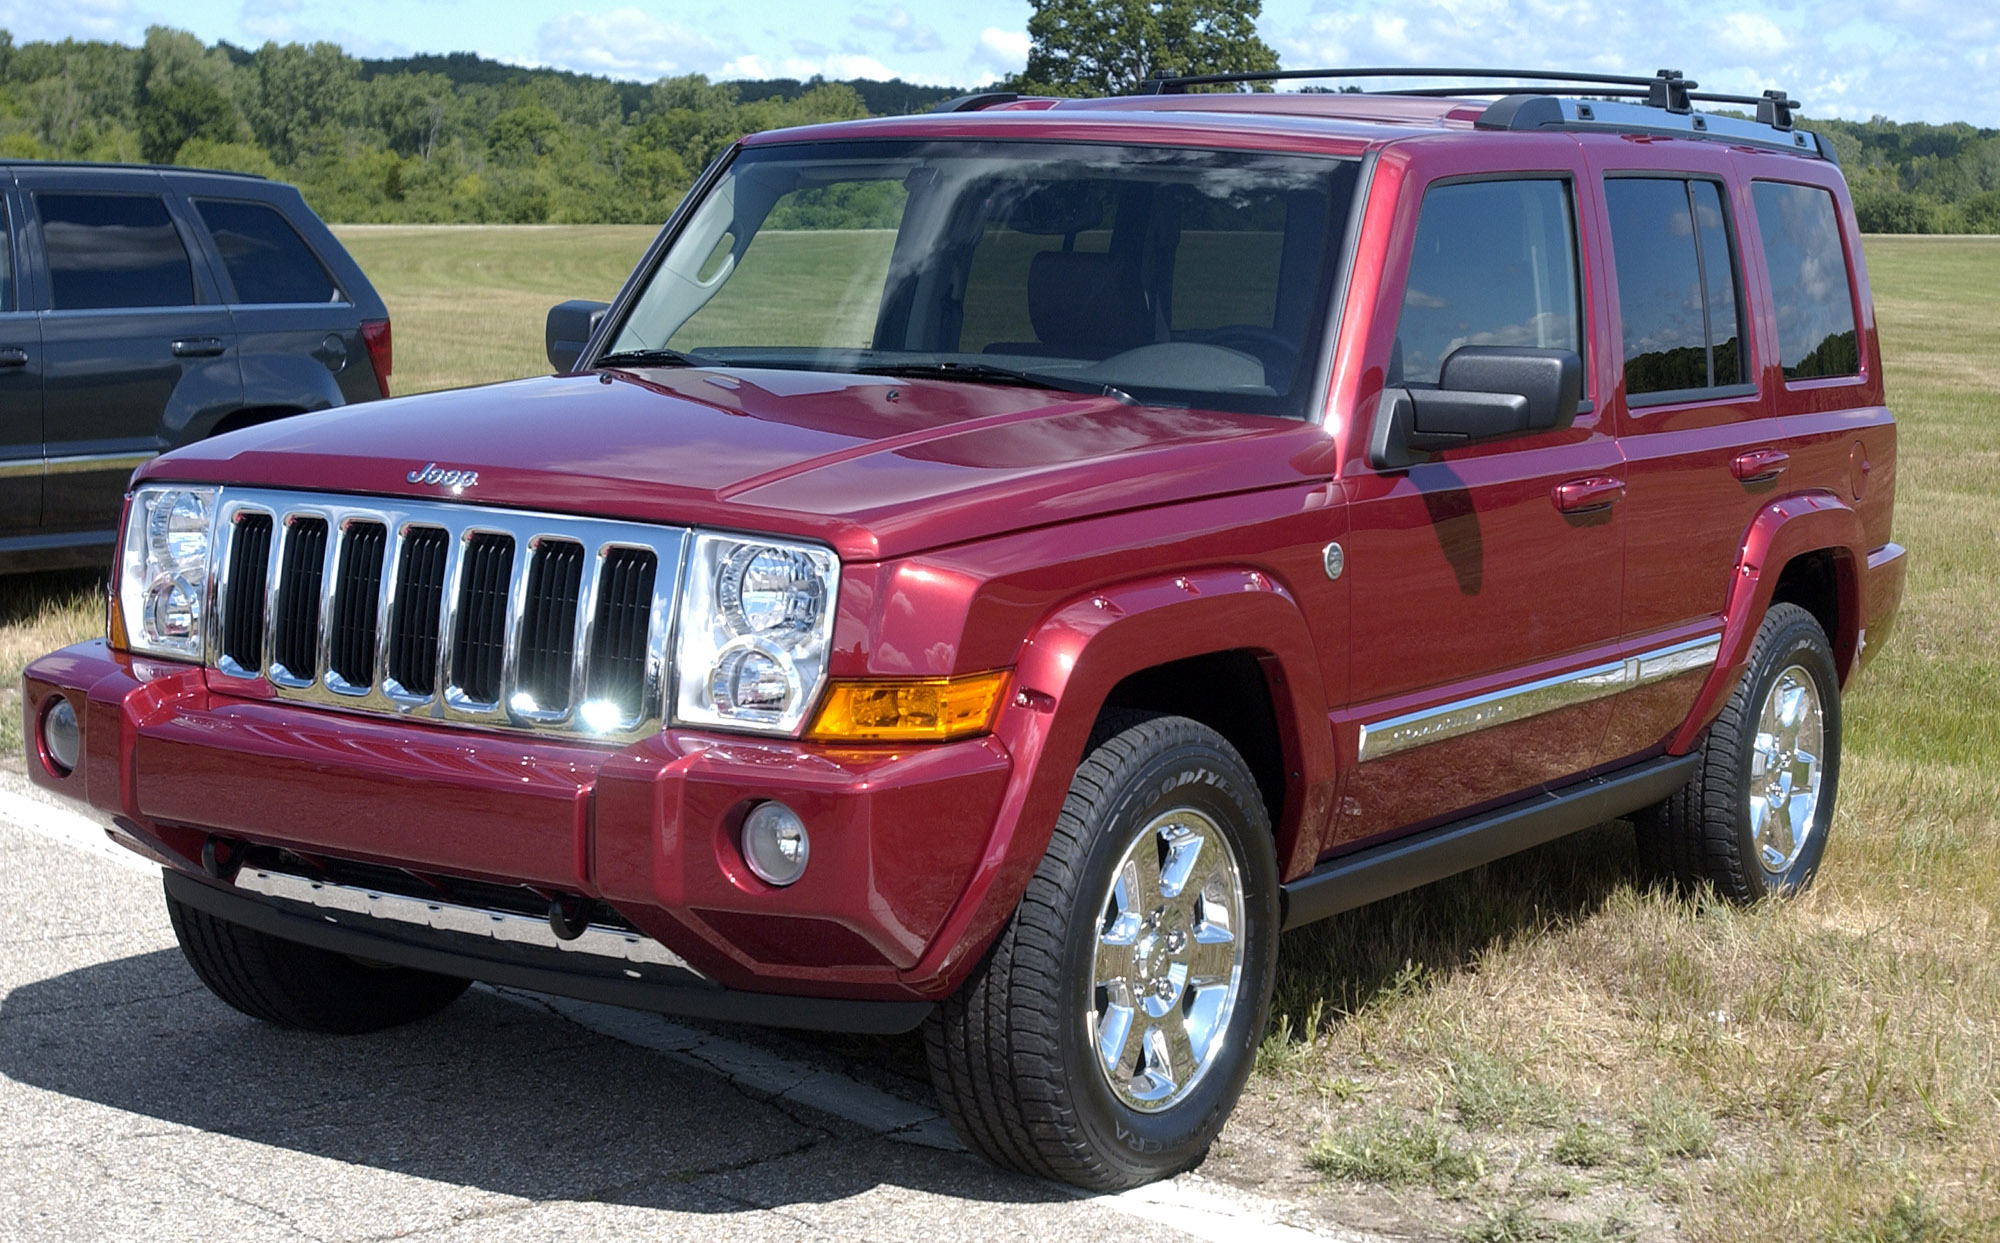 2005 Jeep Grand Cherokee >> Chrysler recalls 469,000 Jeep SUVs - The Blade